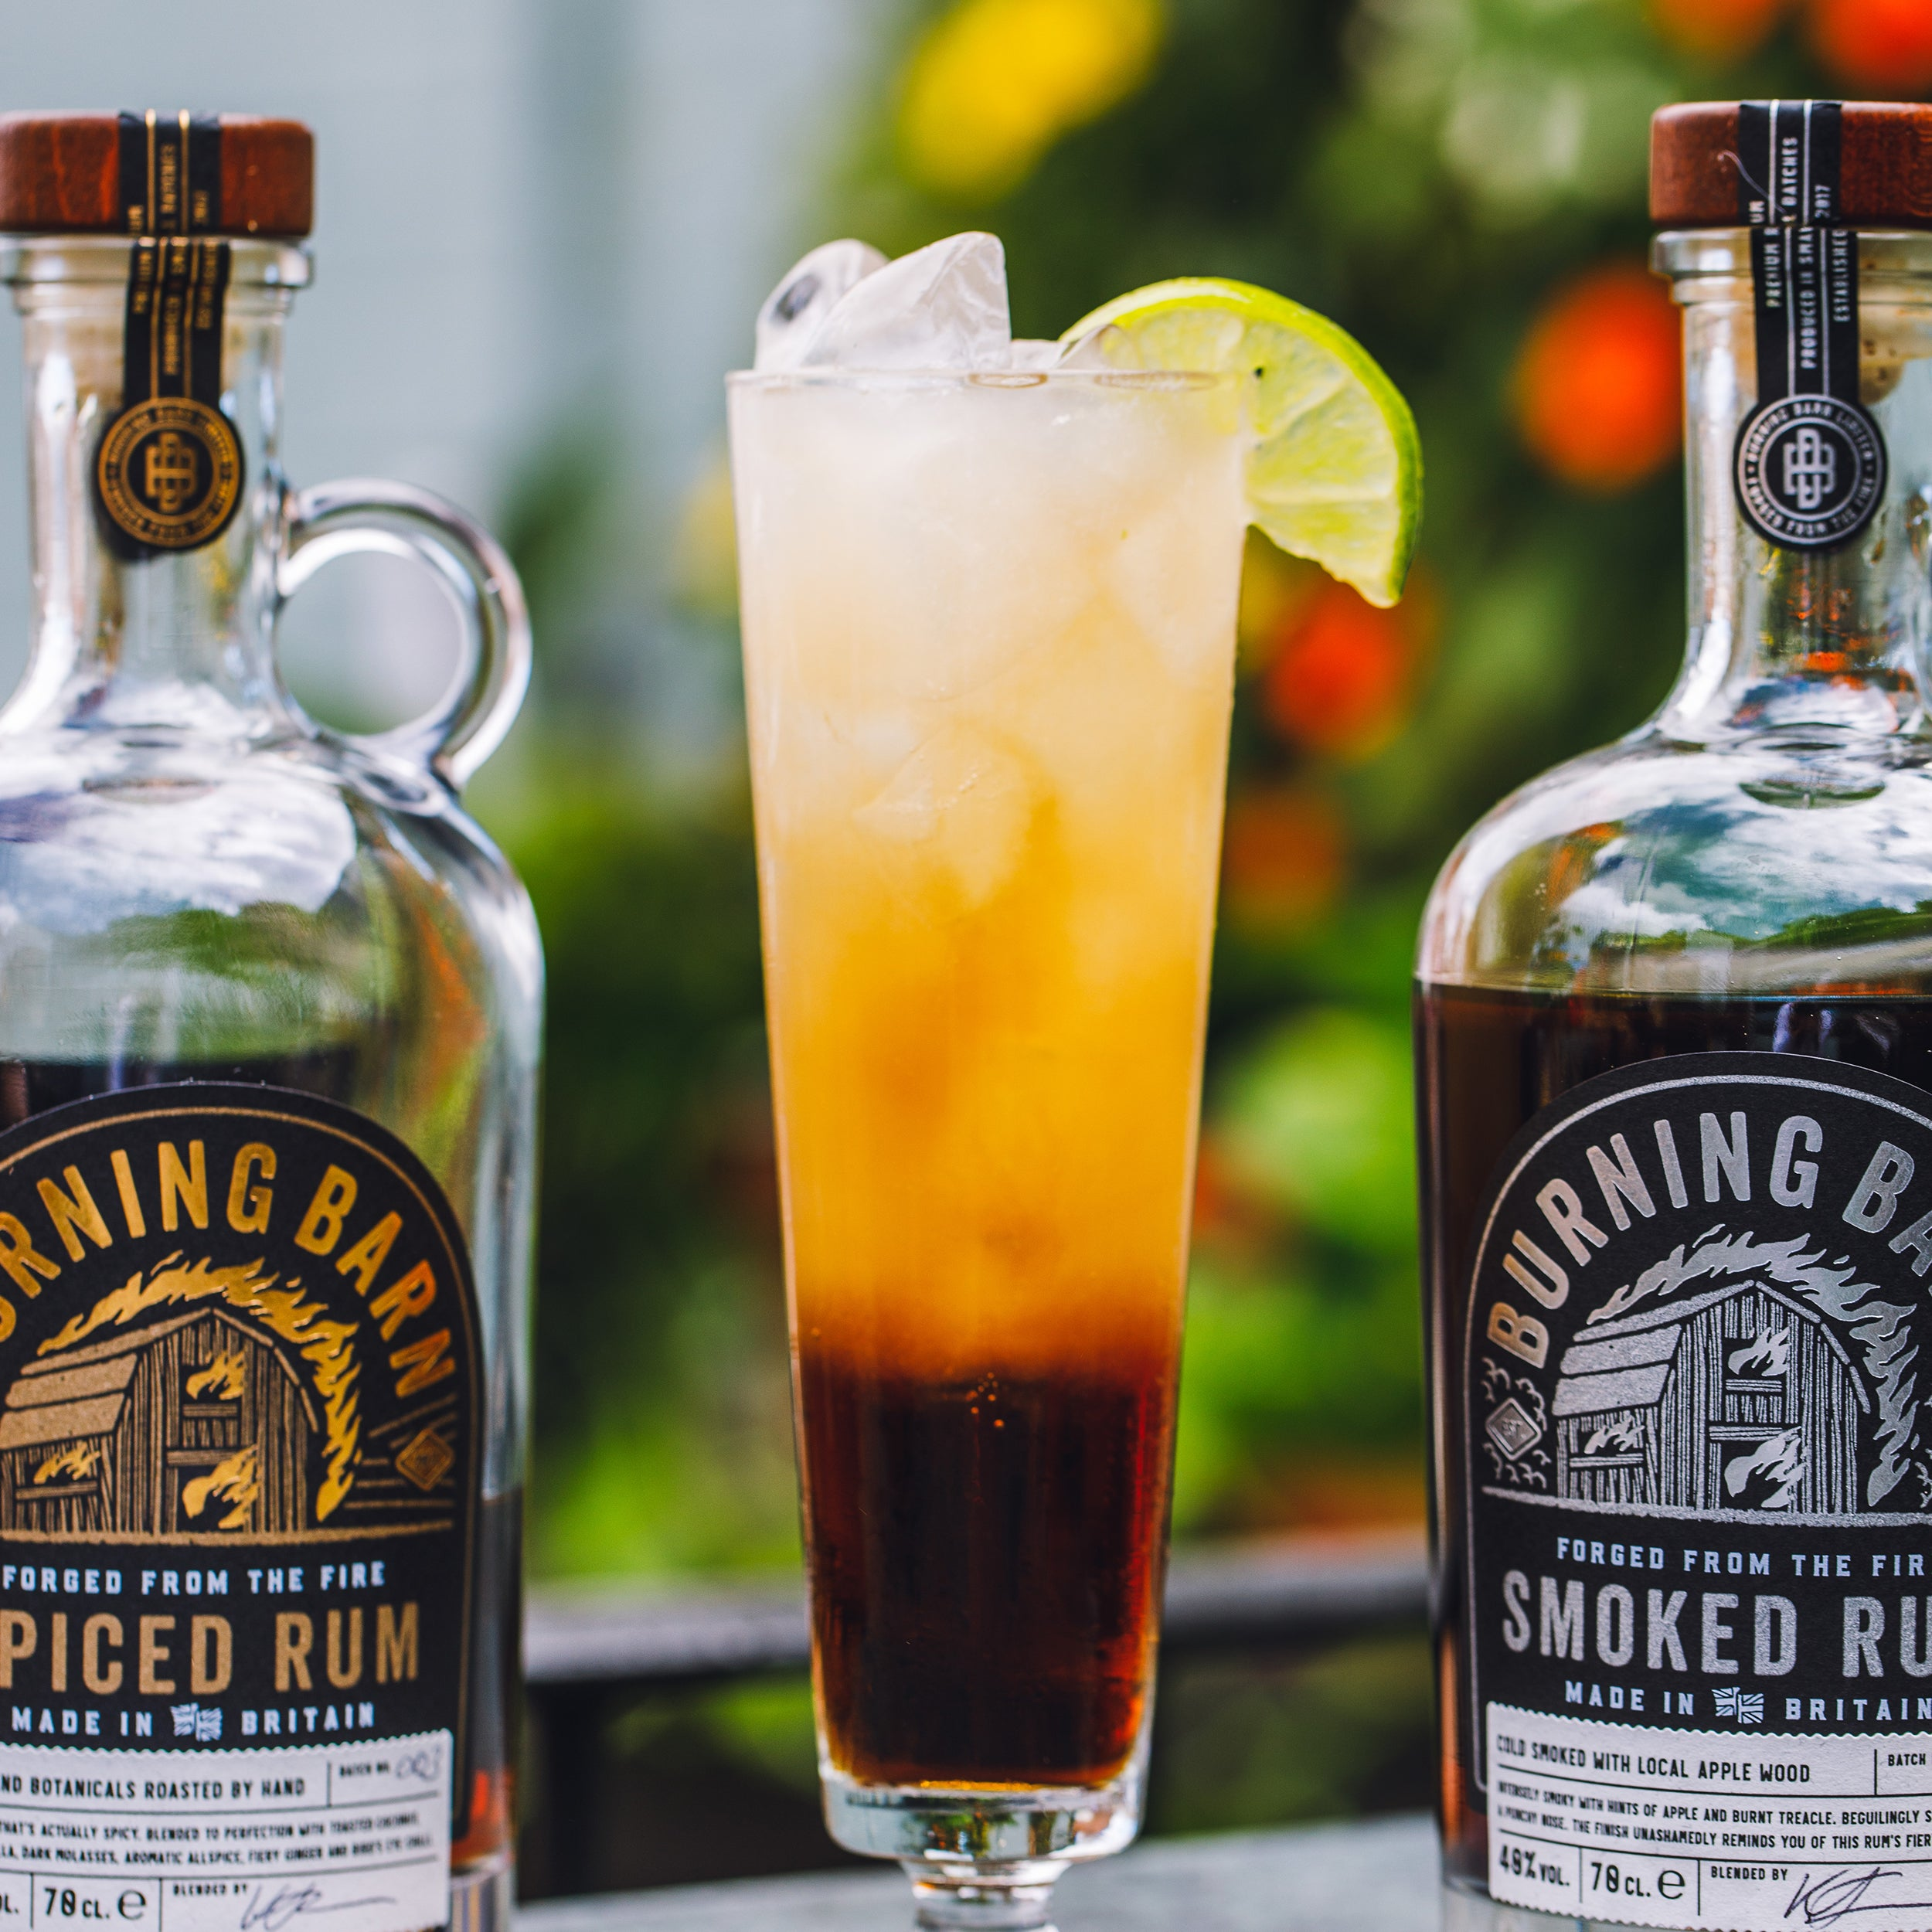 BURNING BARN ICED TEA